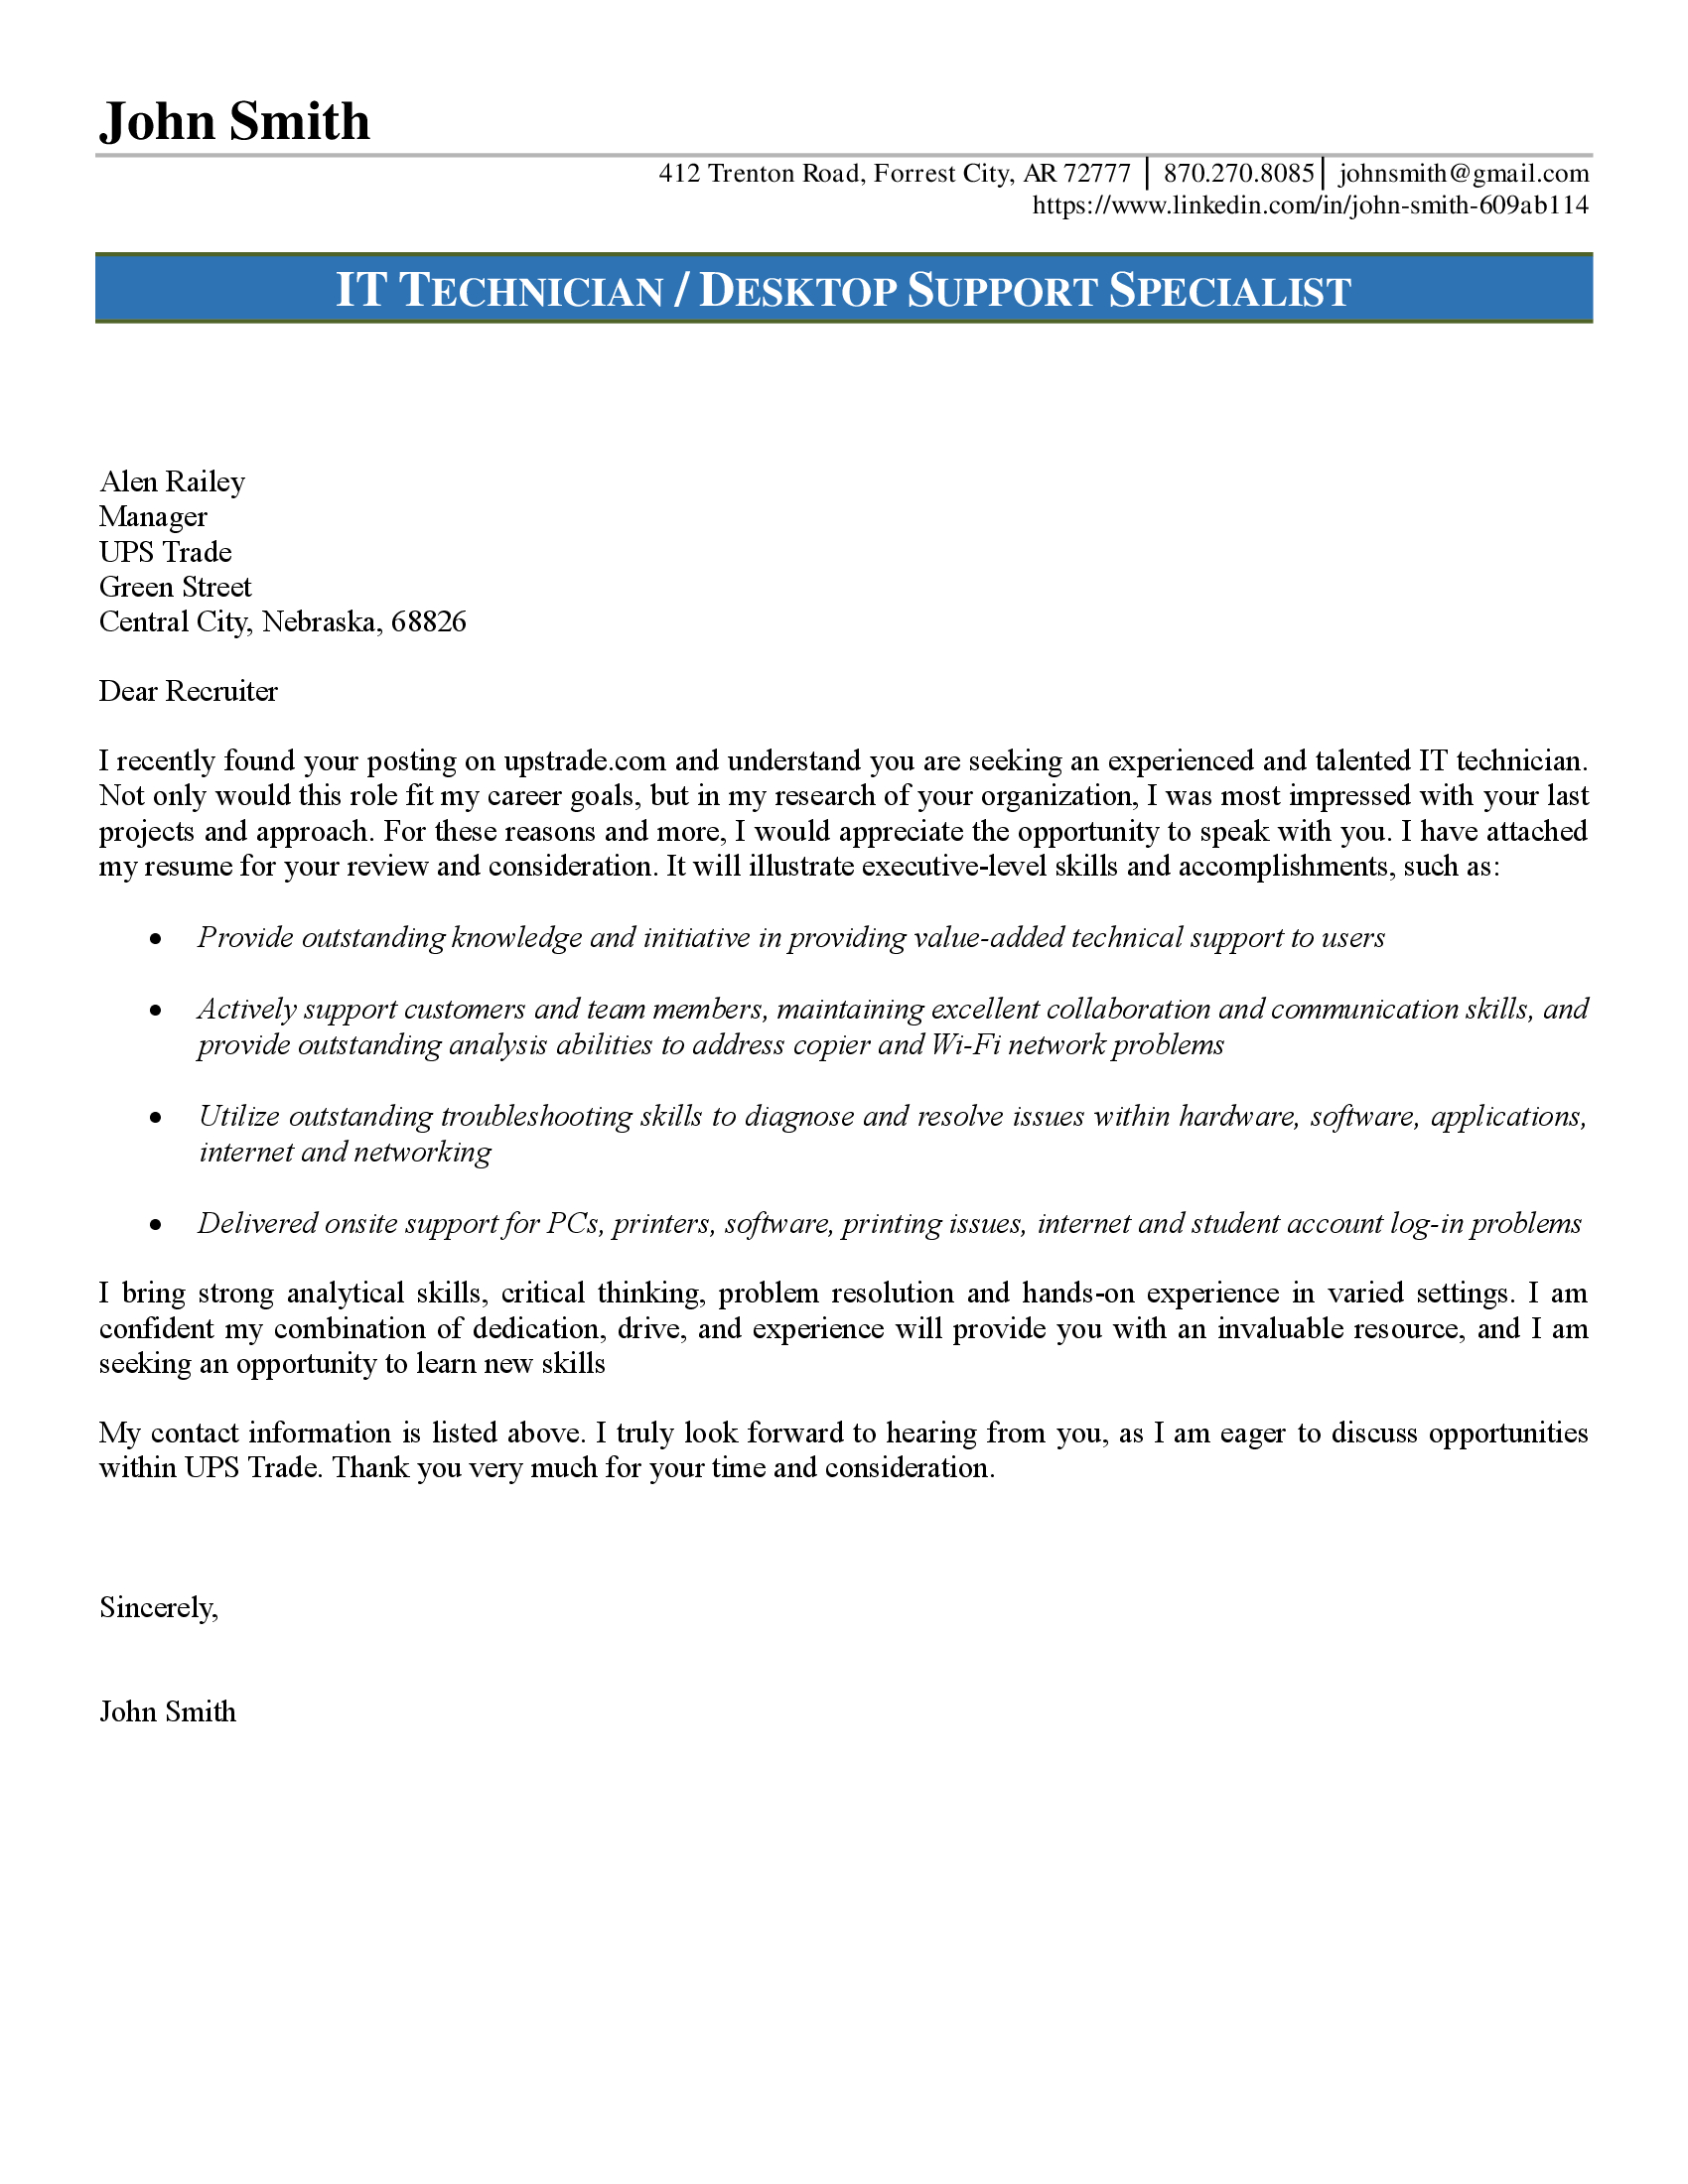 Cover Letter Technical Support Specialist